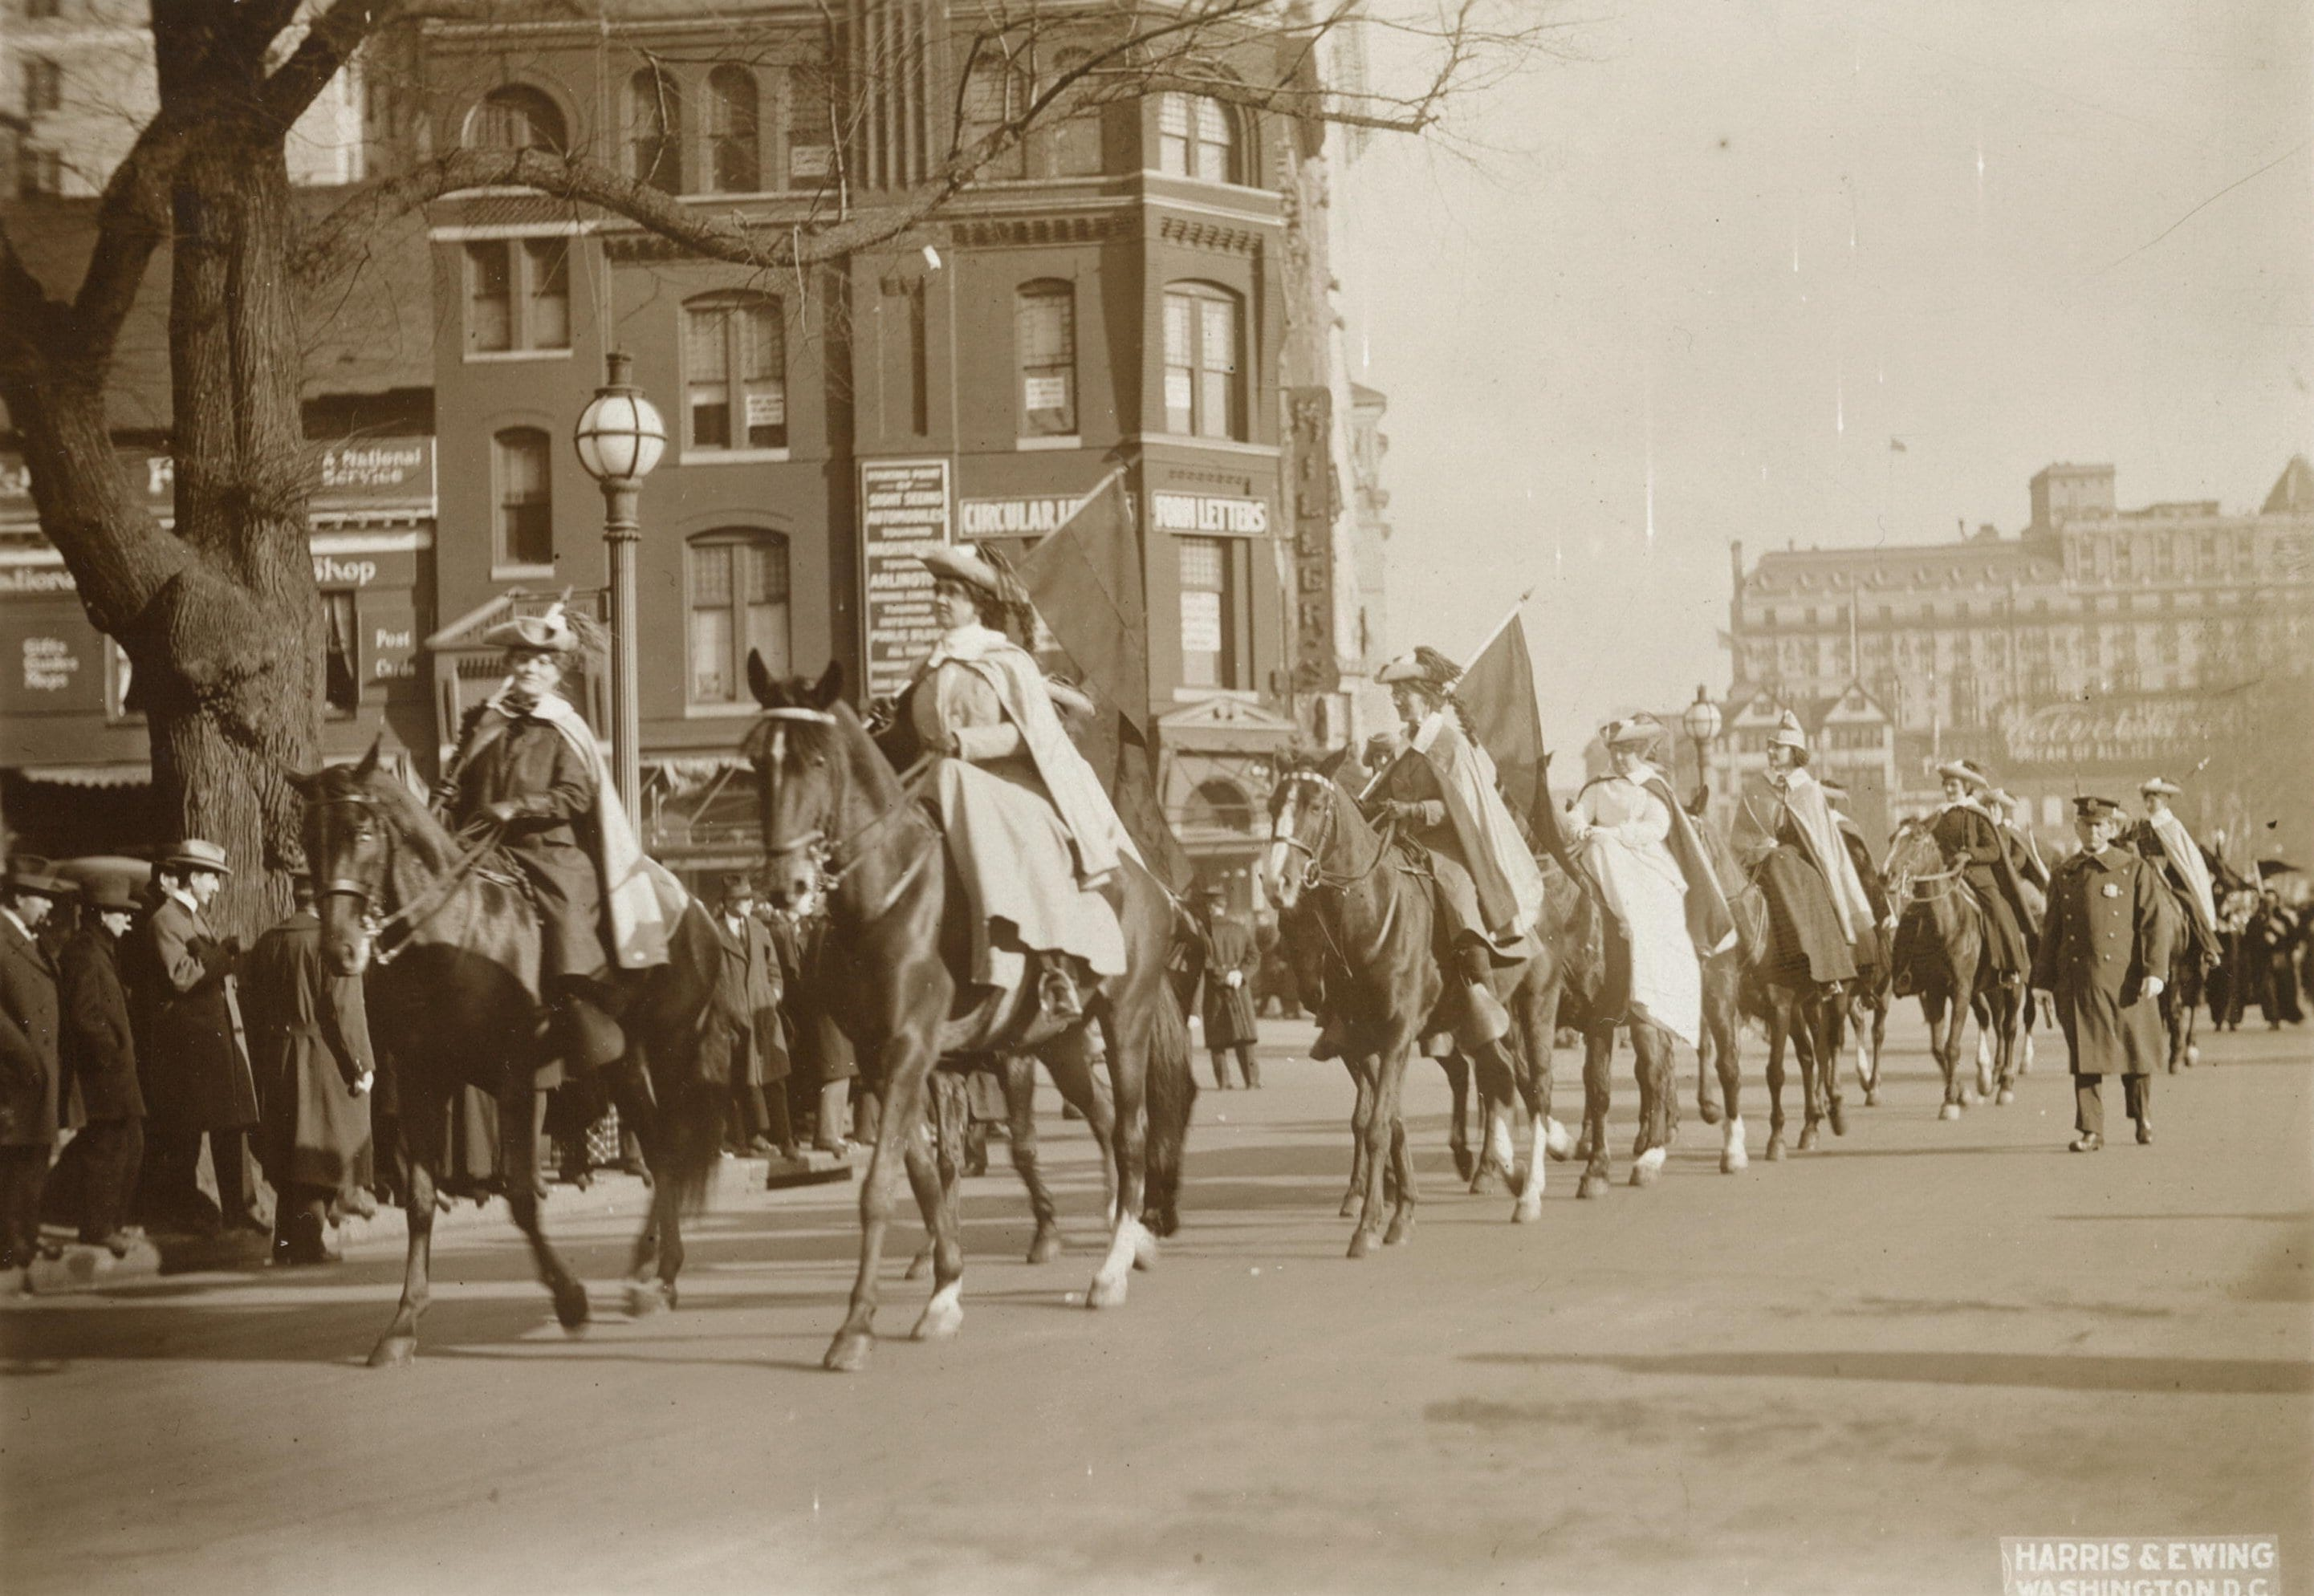 Women on horseback in suffrage parade, Washington, D.C., May 9, 1914 (Library of Congress)